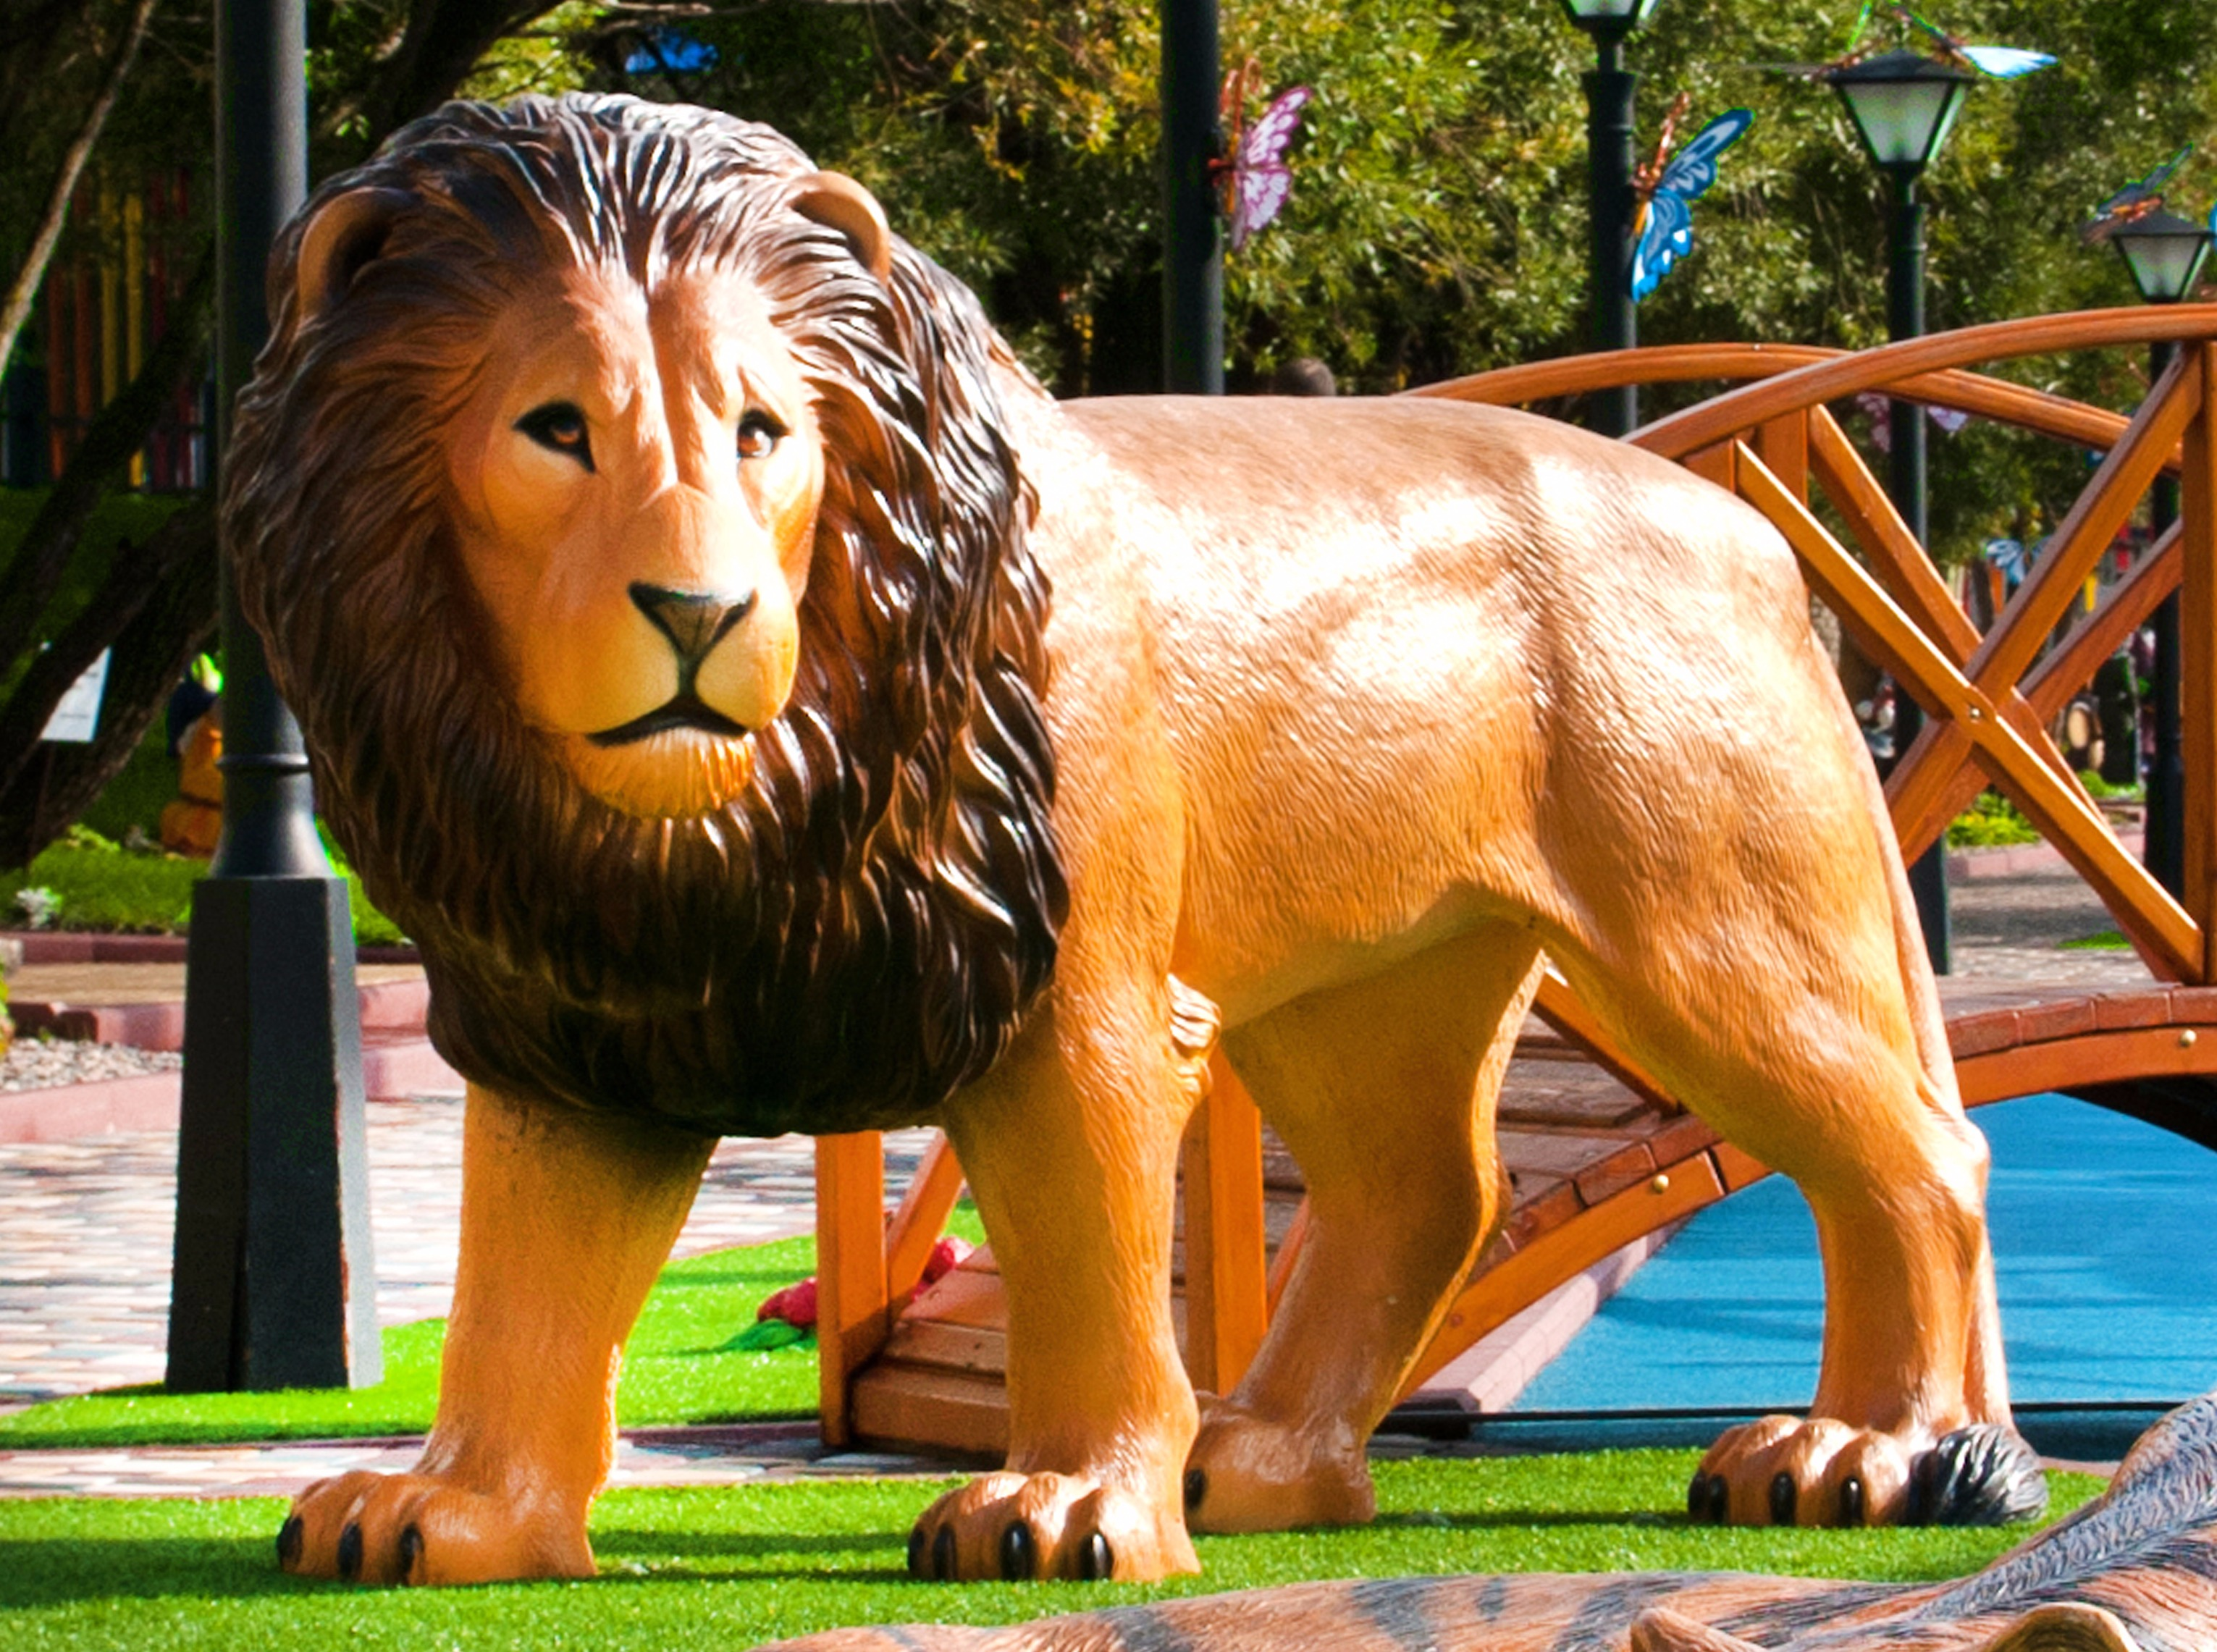 SOLIDSCAN Company Digitized A Decorative Carved Sculpture Of A Lion For A  Company Smik, Russia, Which Manufactures Decorative Garden Figures From The  ...